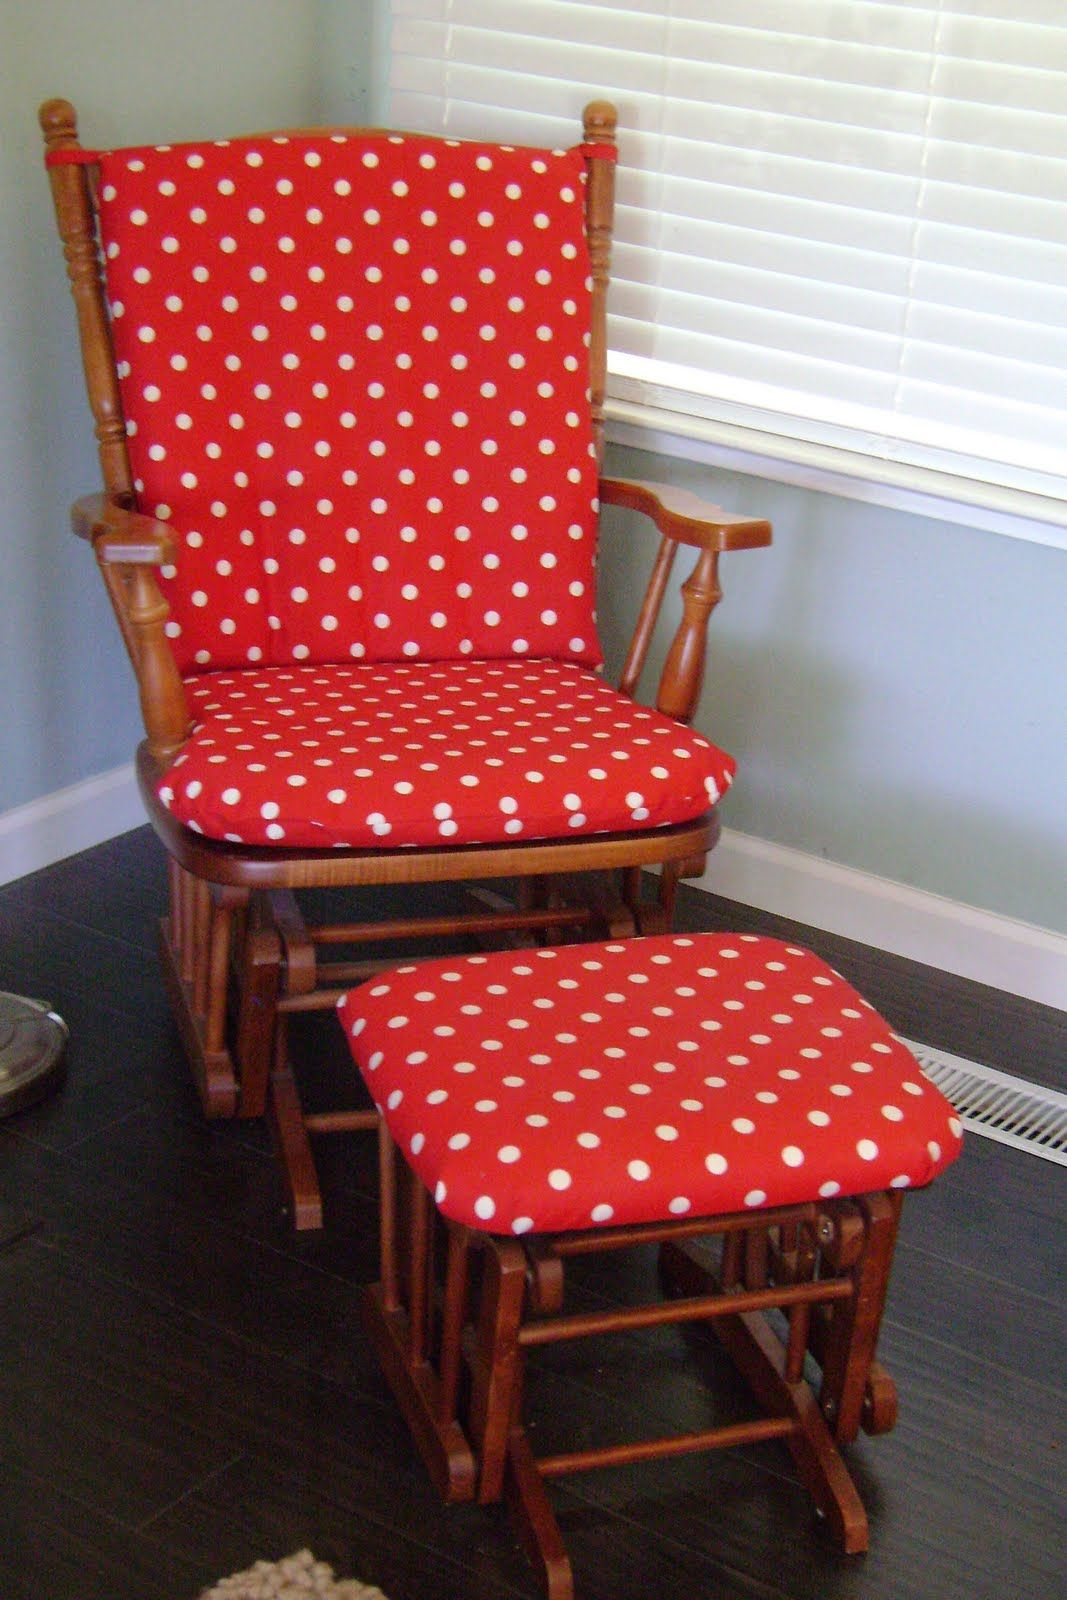 Red White Polka Dot Glider Cushions